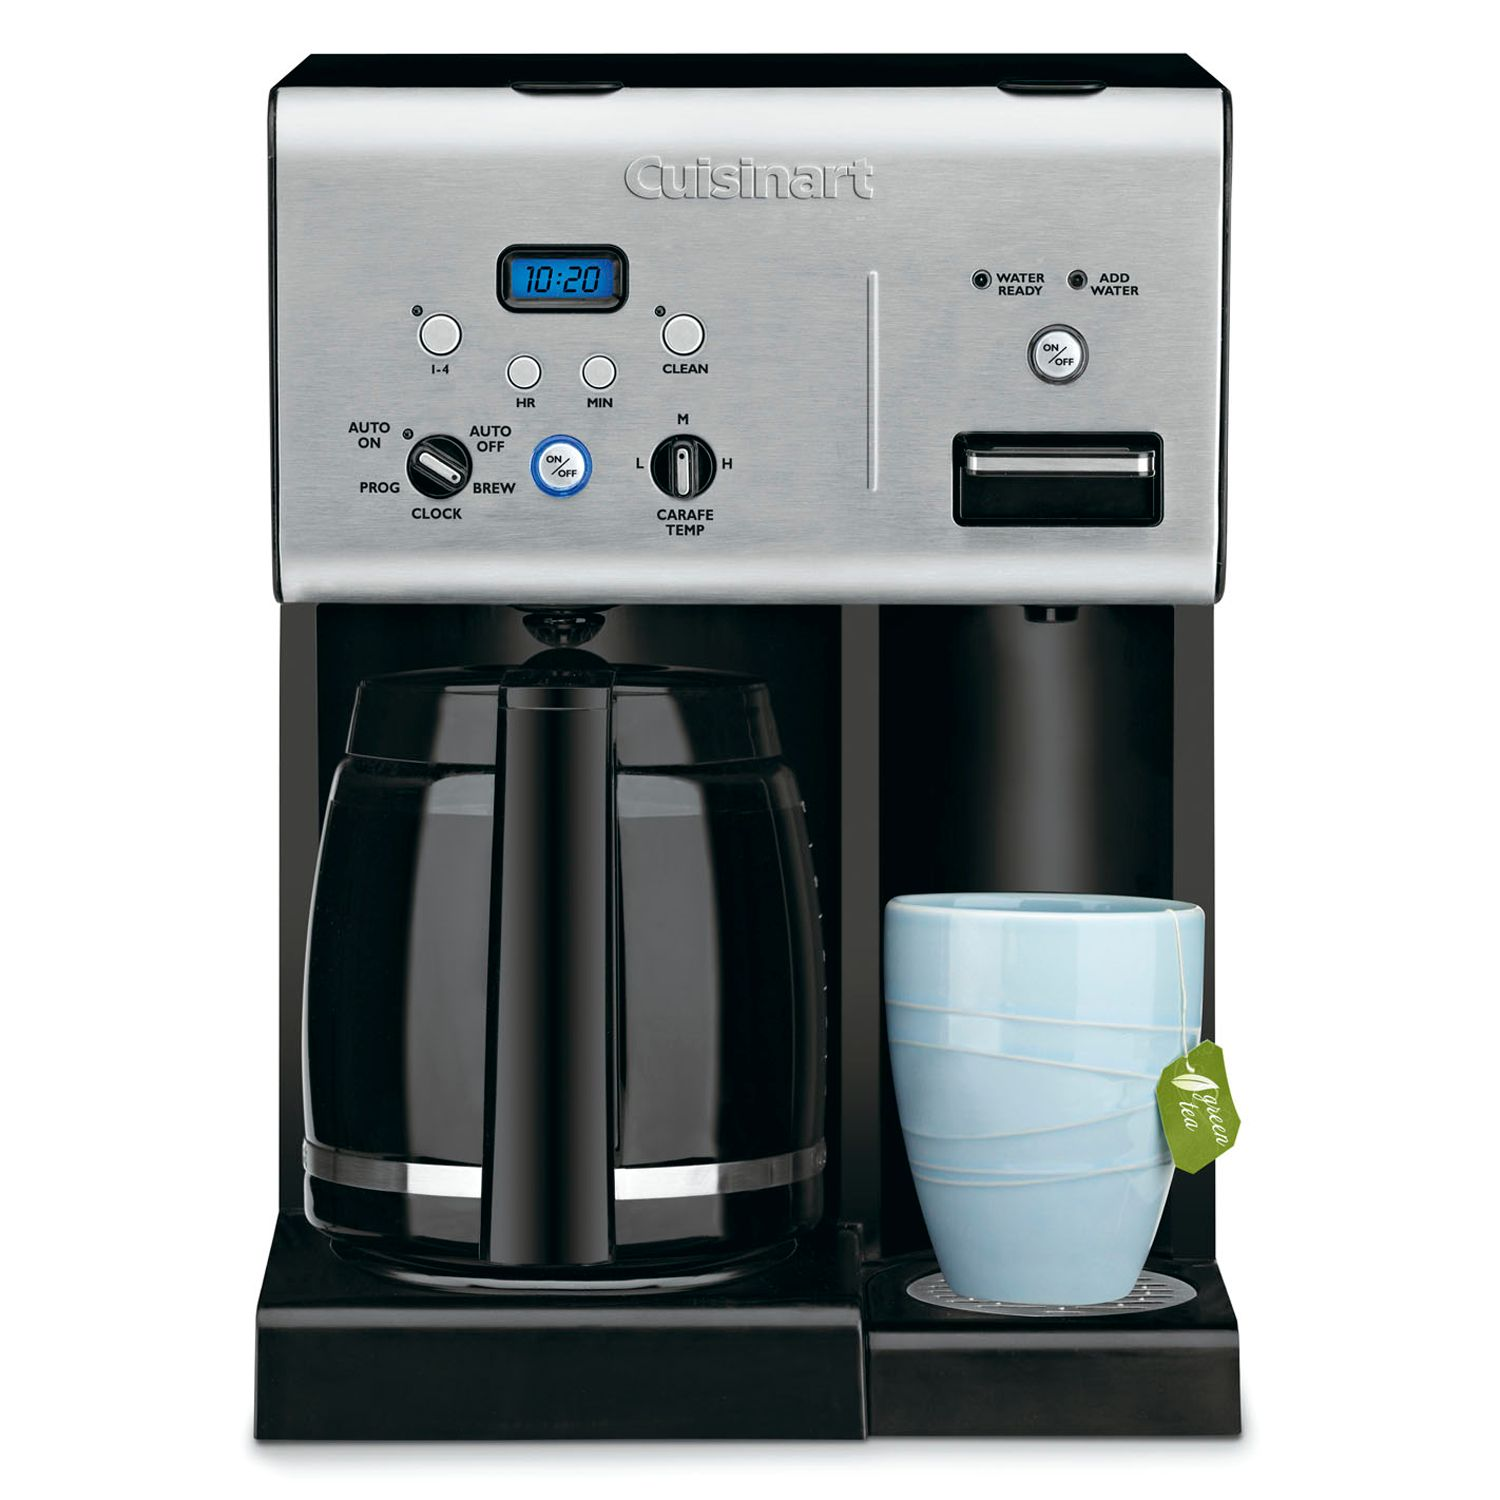 Cuisinart Coffee Makers Coffee Espresso & Tea Small Appliances